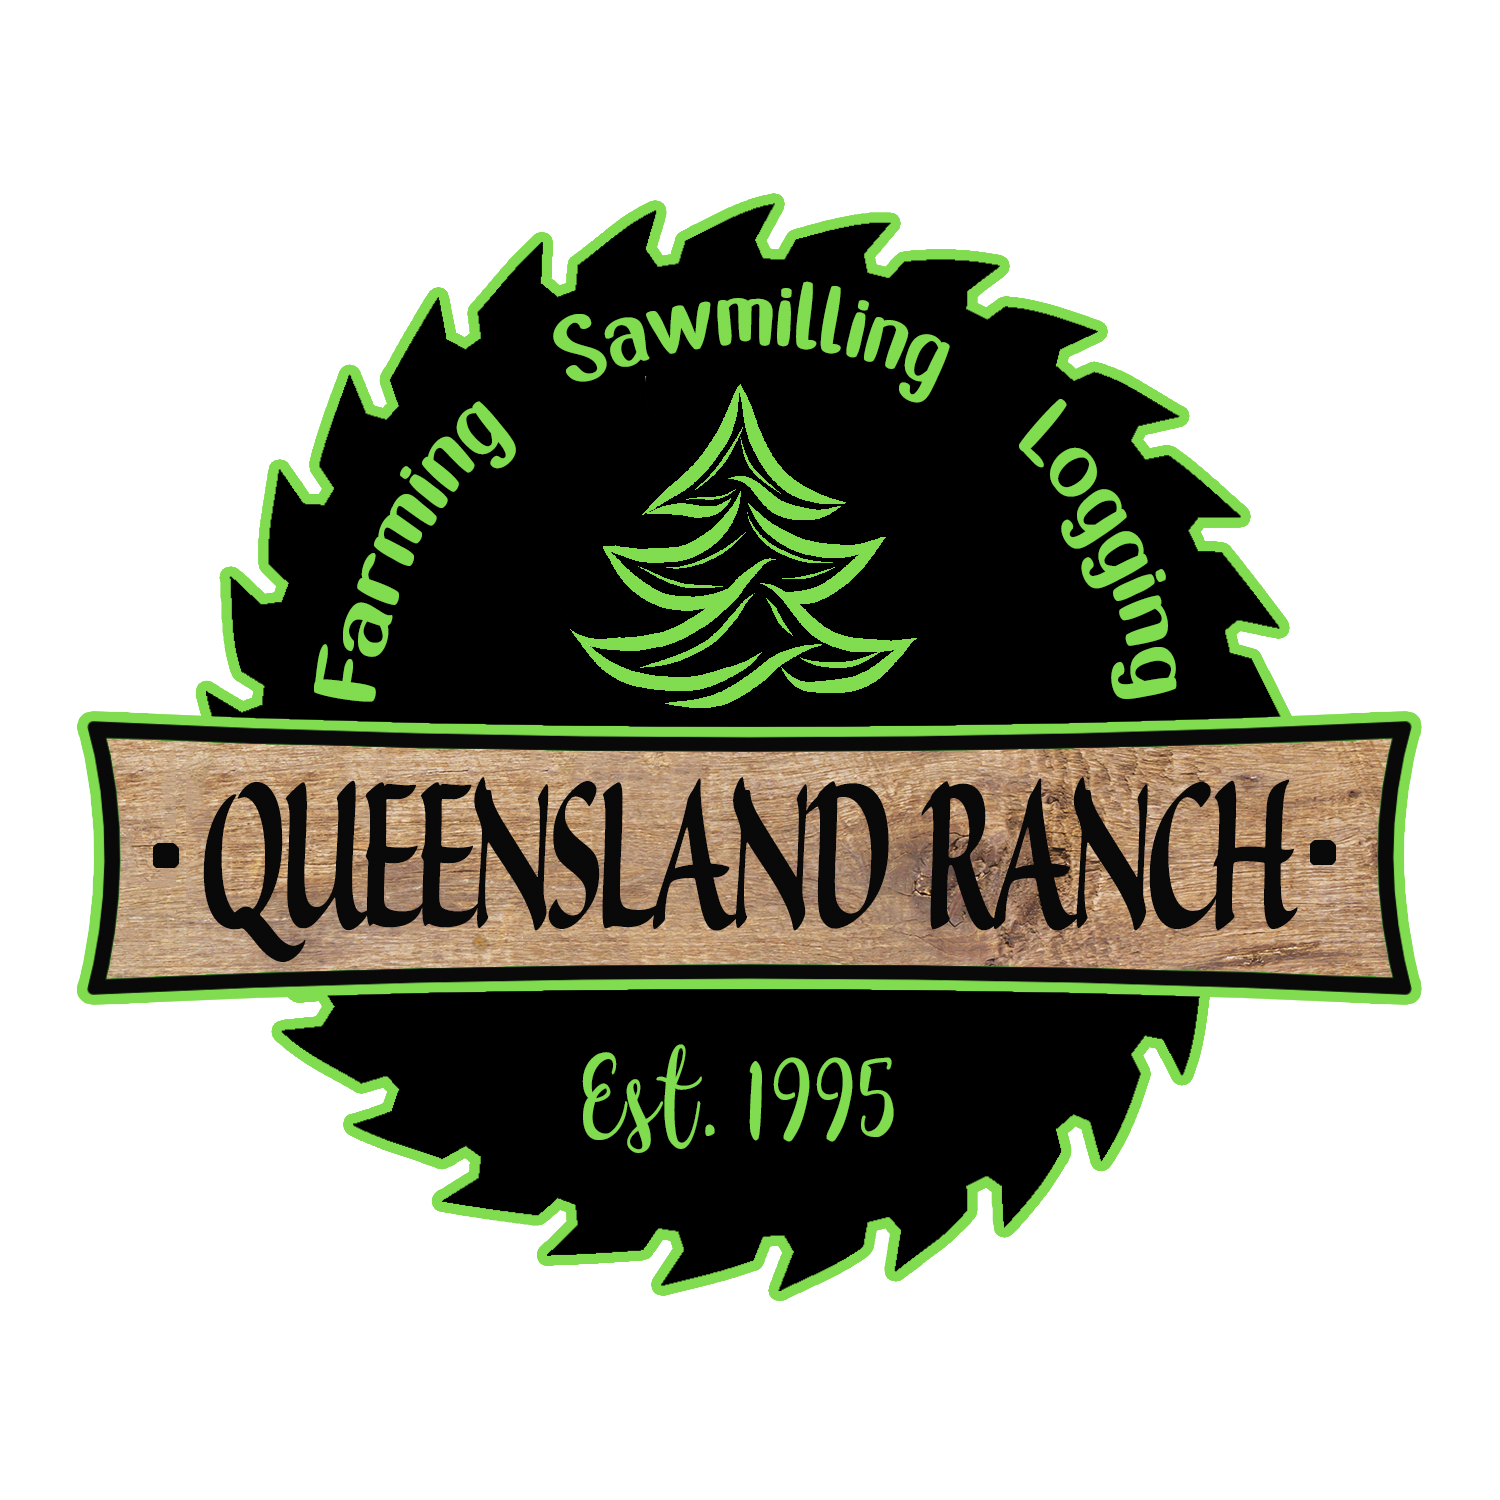 Queensland Ranch logo